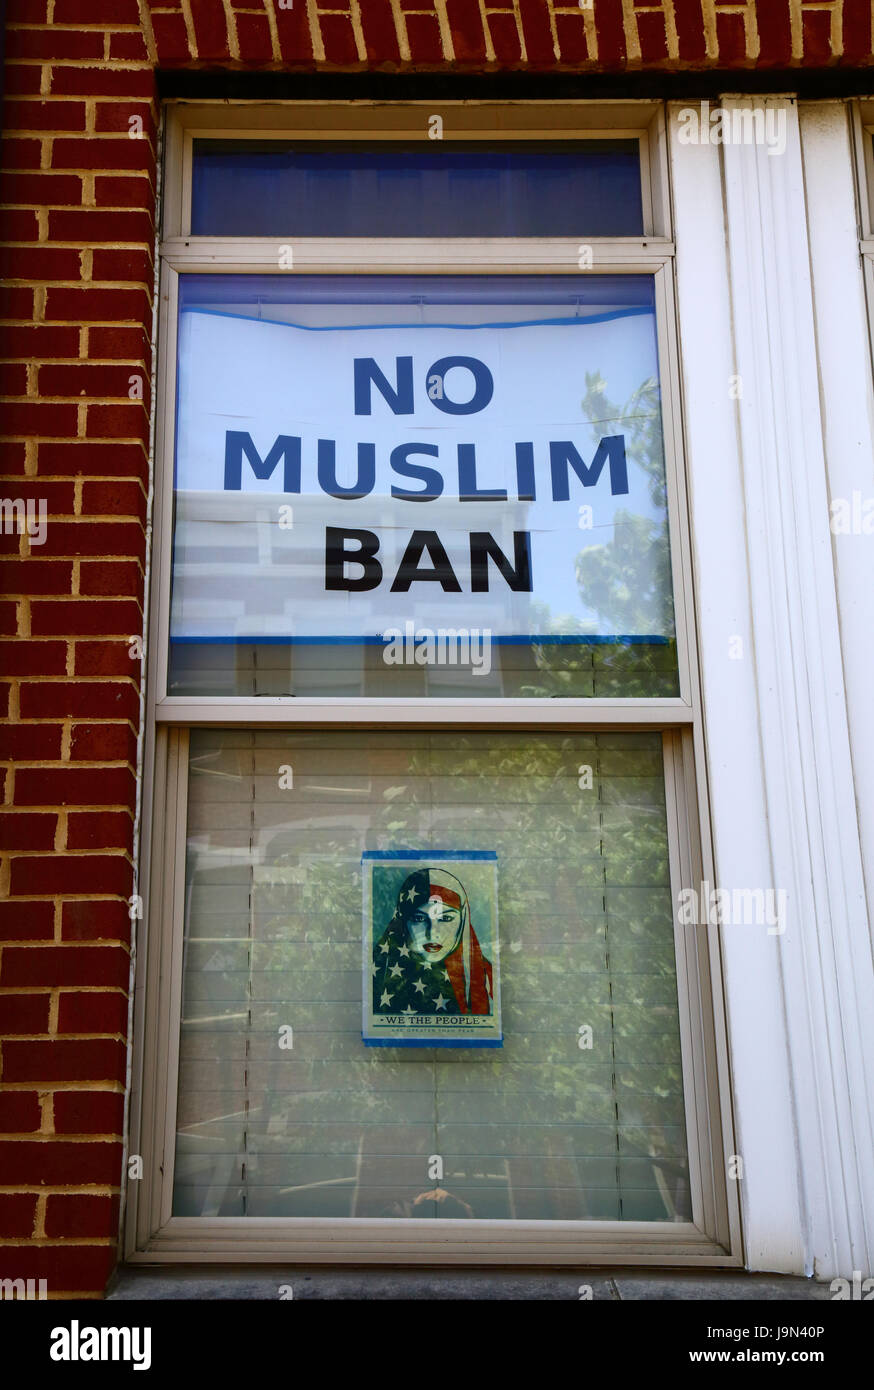 No Muslim Ban poster in  house window, Baltimore, Maryland, USA - Stock Image